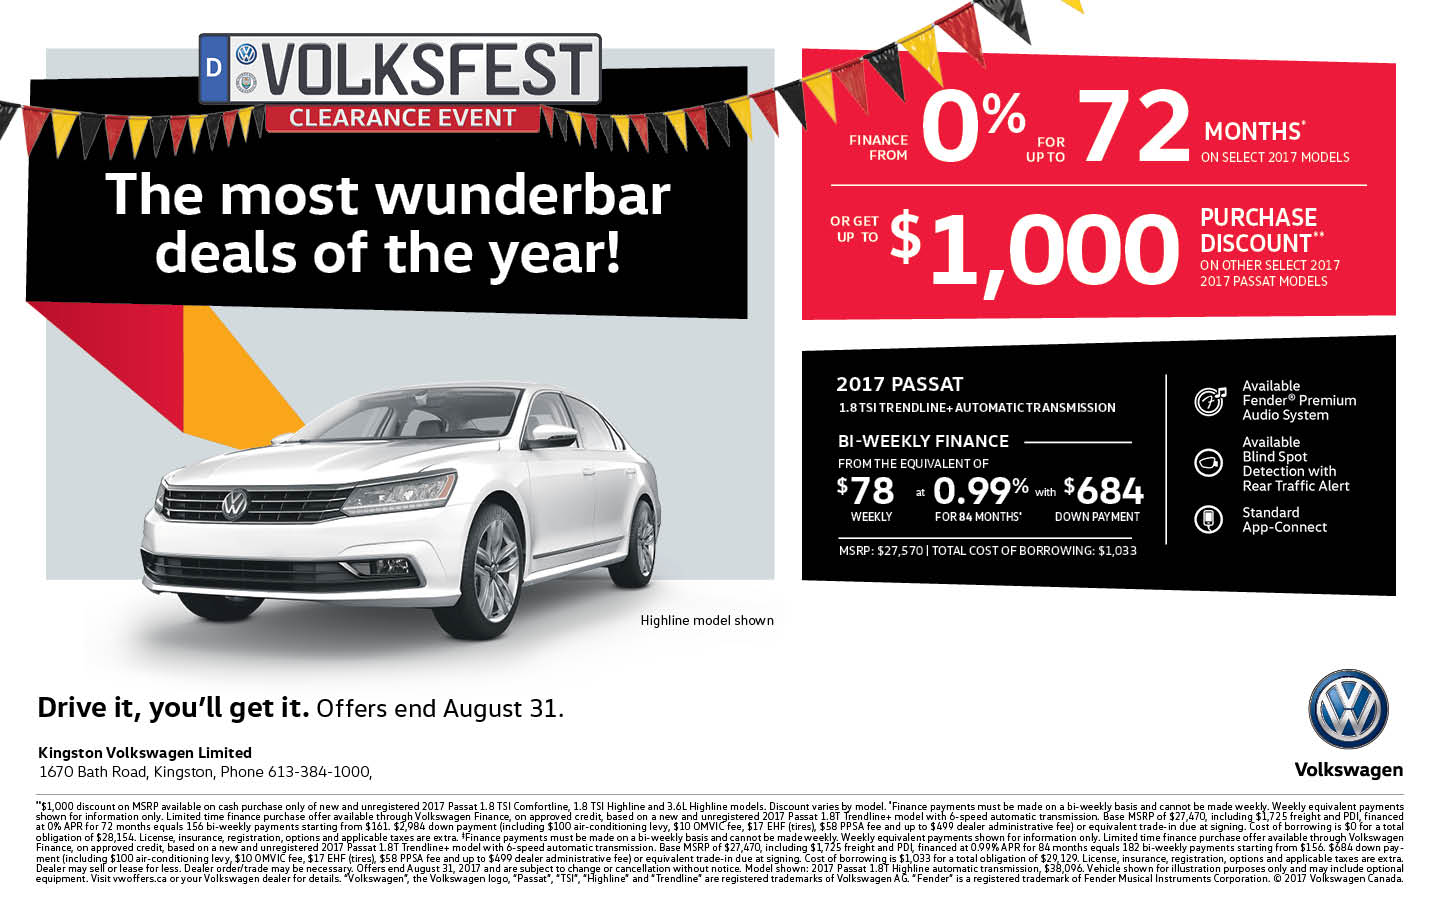 2017 Passat | Volksfest Clearance Event